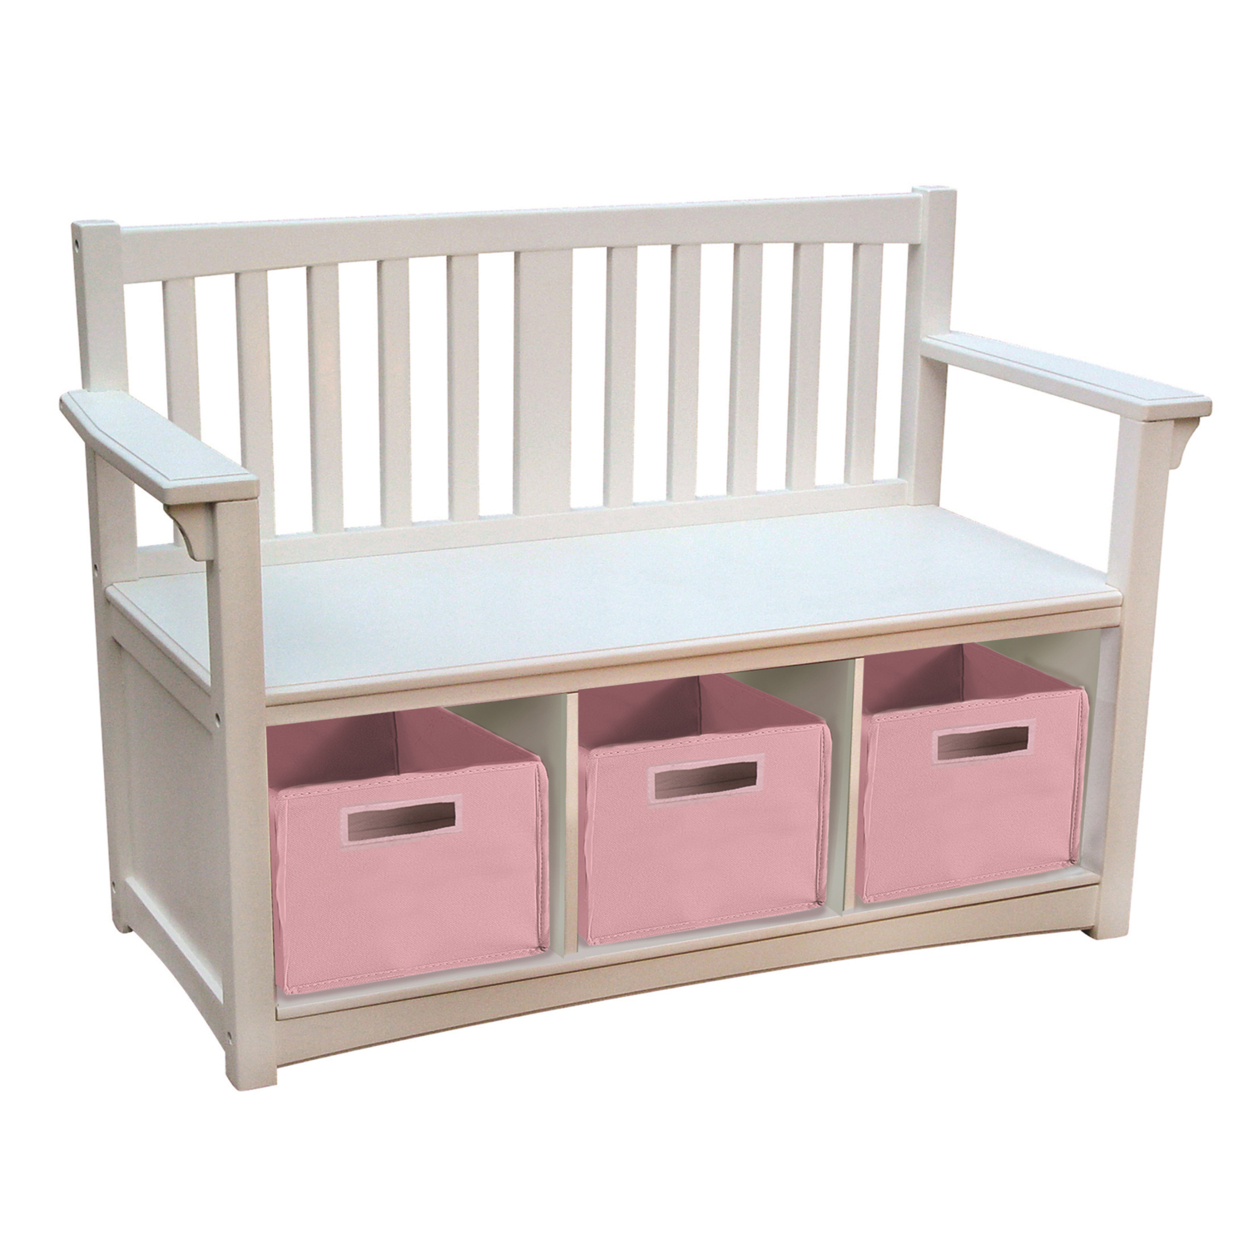 GuideCraft Classic White Storage Bench guidecraft dress up cubby center white